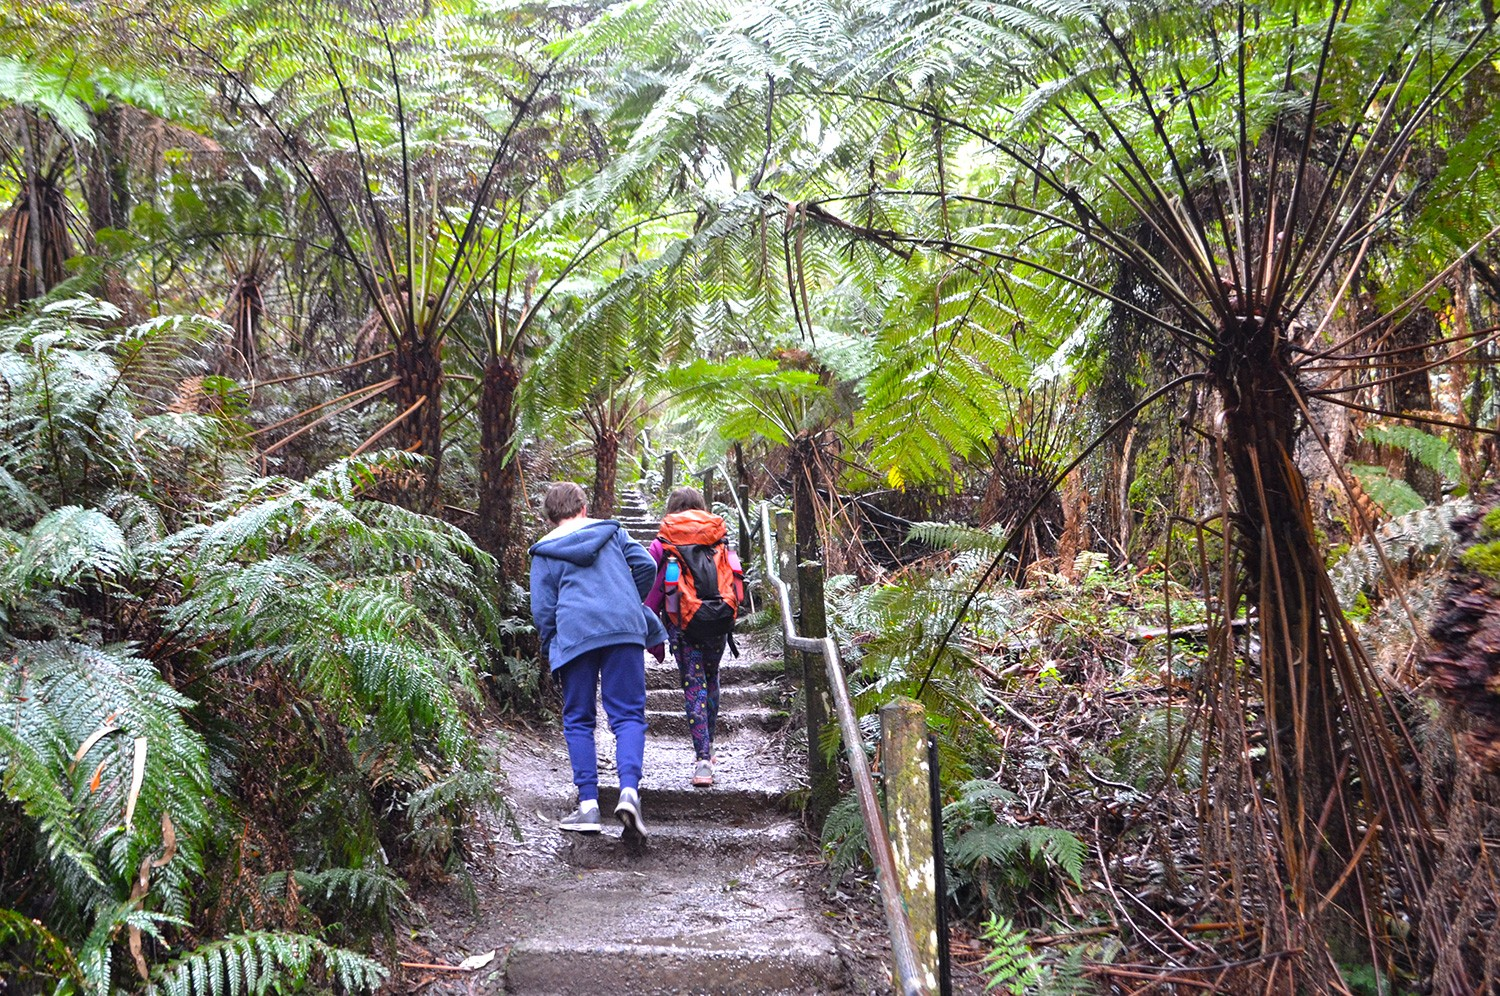 Kids on the 1000 Steps - Dandenong Ranges National Park